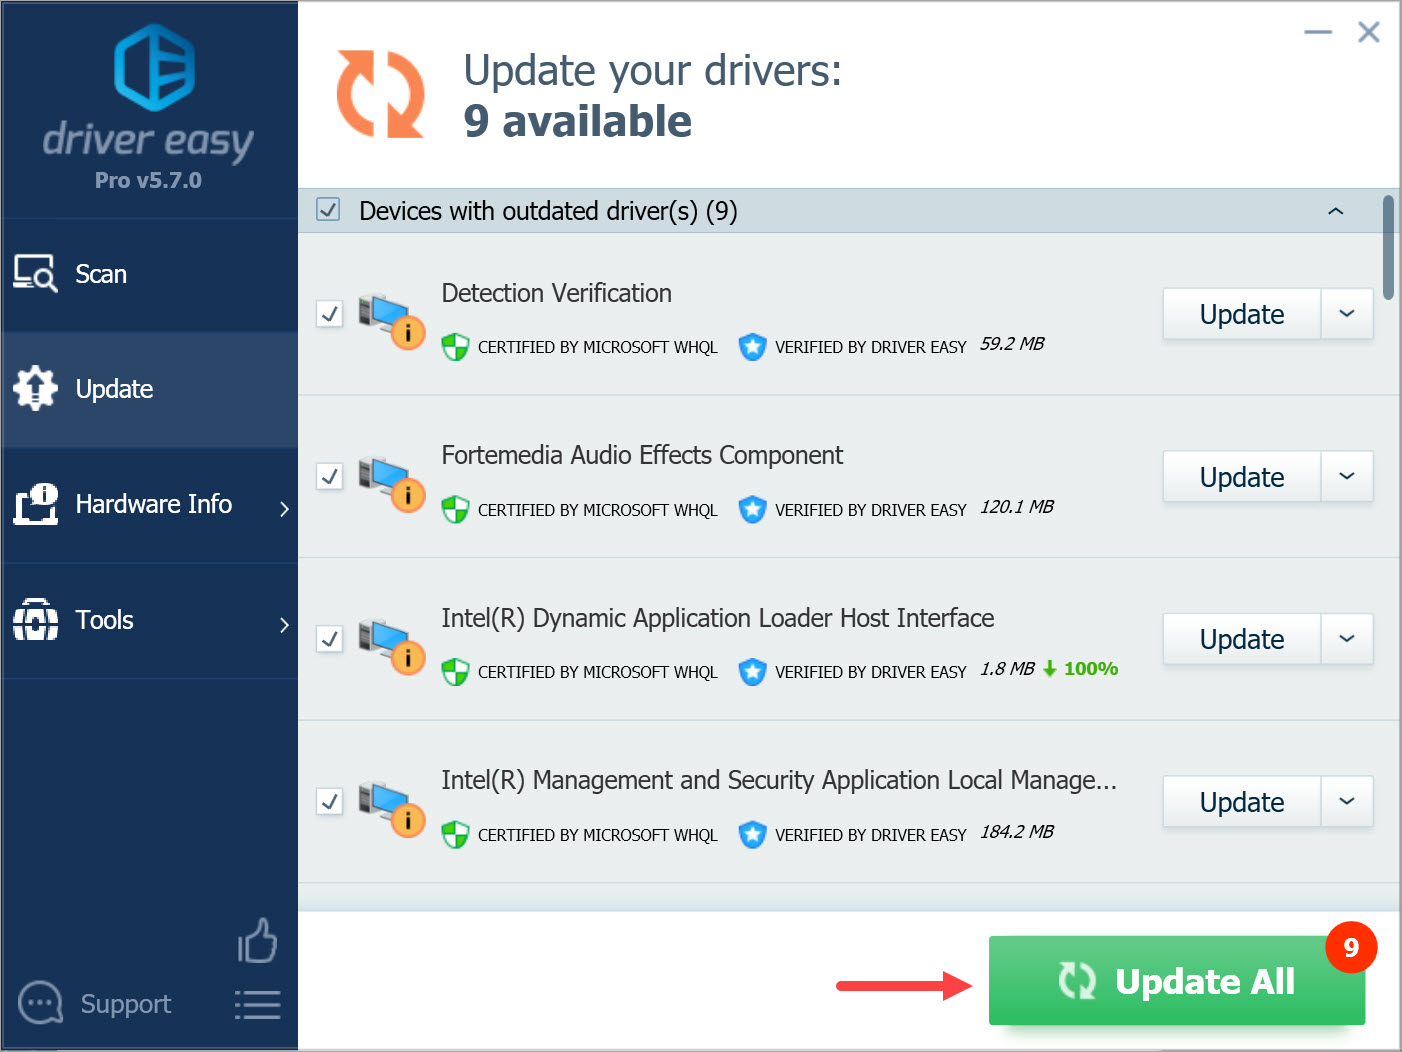 Driver Easy Pro Update All drivers